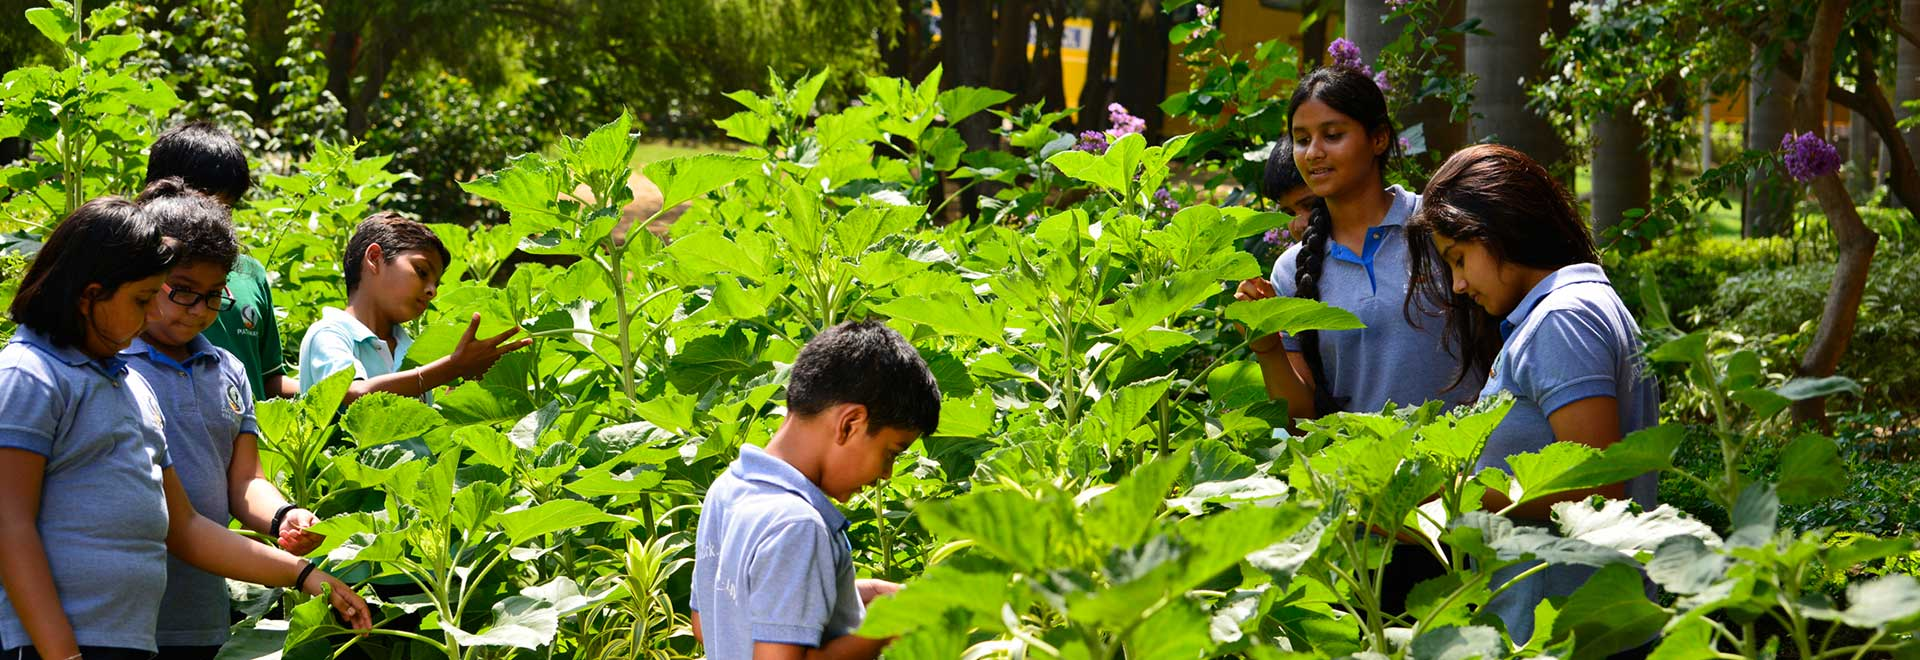 Pathways World School Aravali - Green Pathways